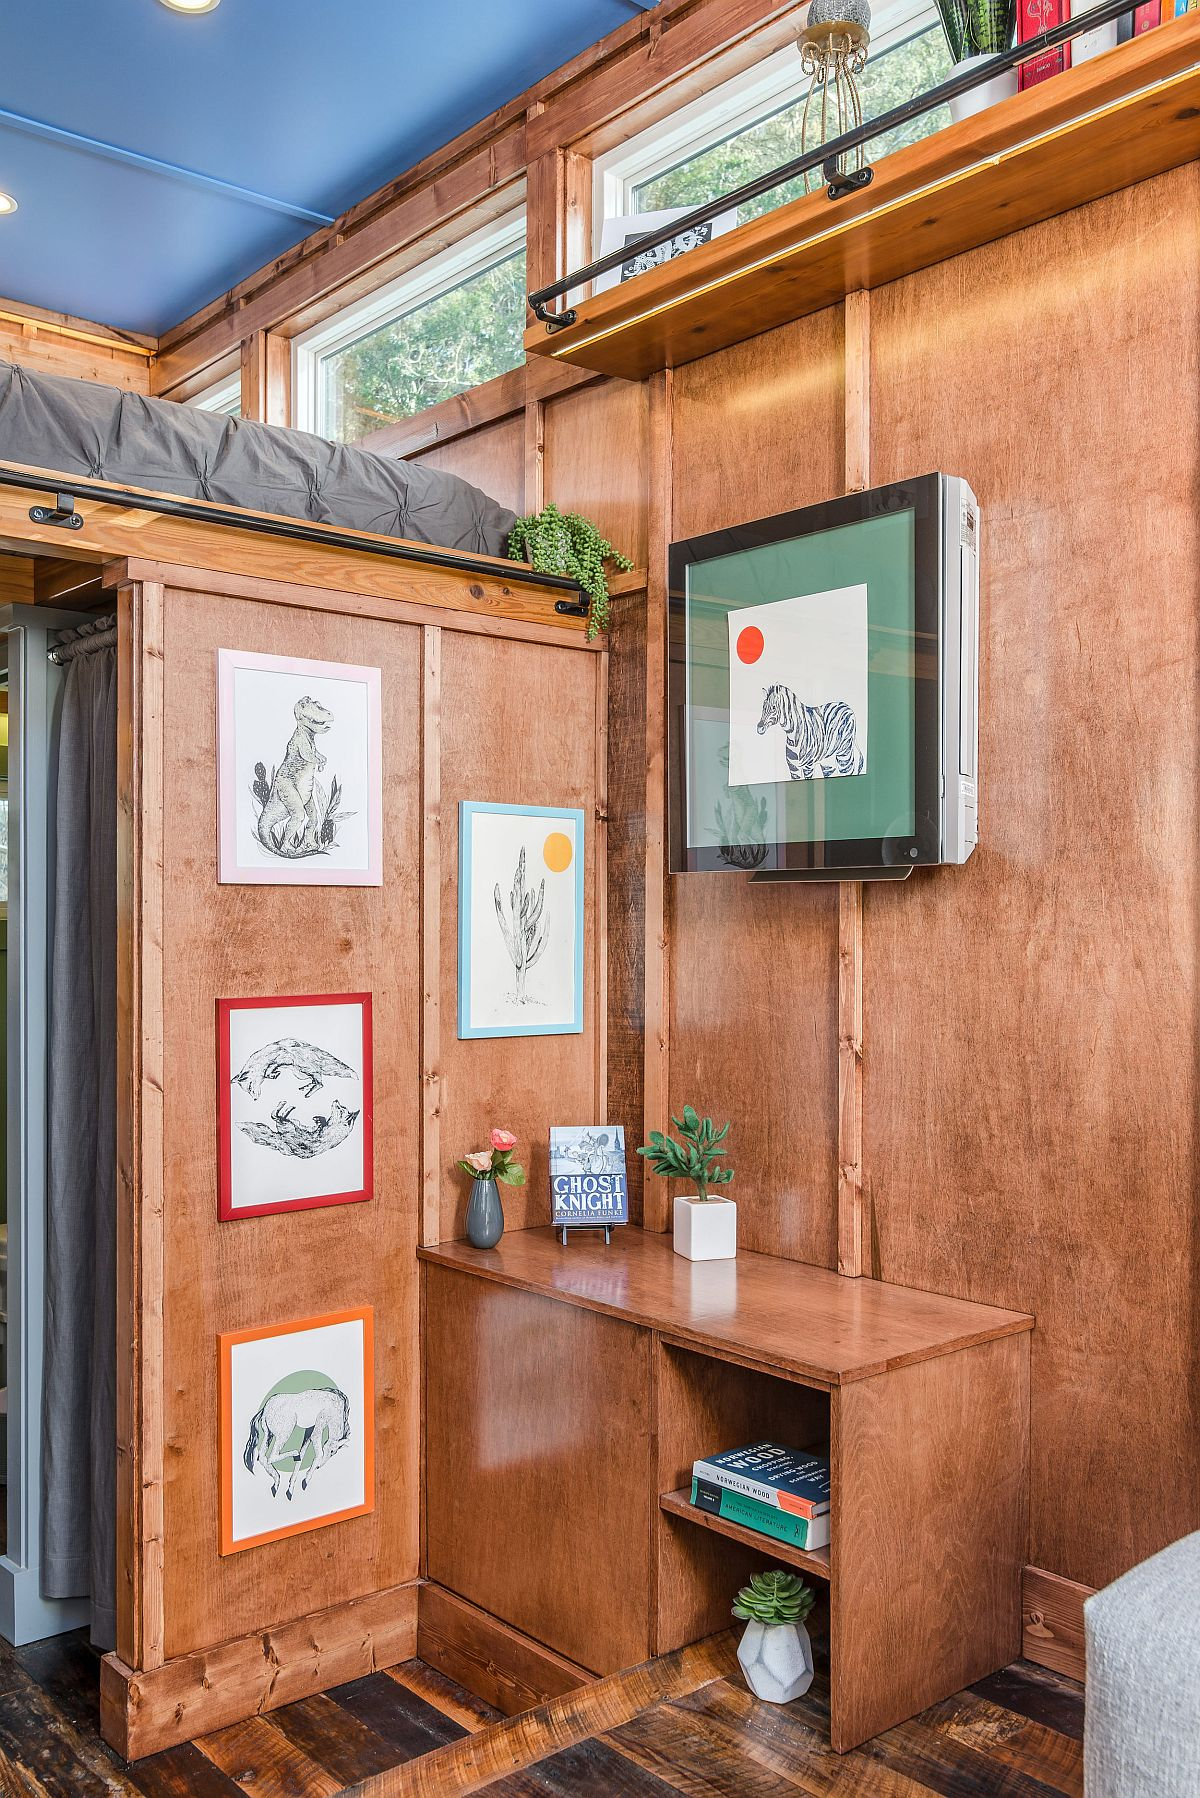 There is space for decorative wall art even in the tiniest of homes!